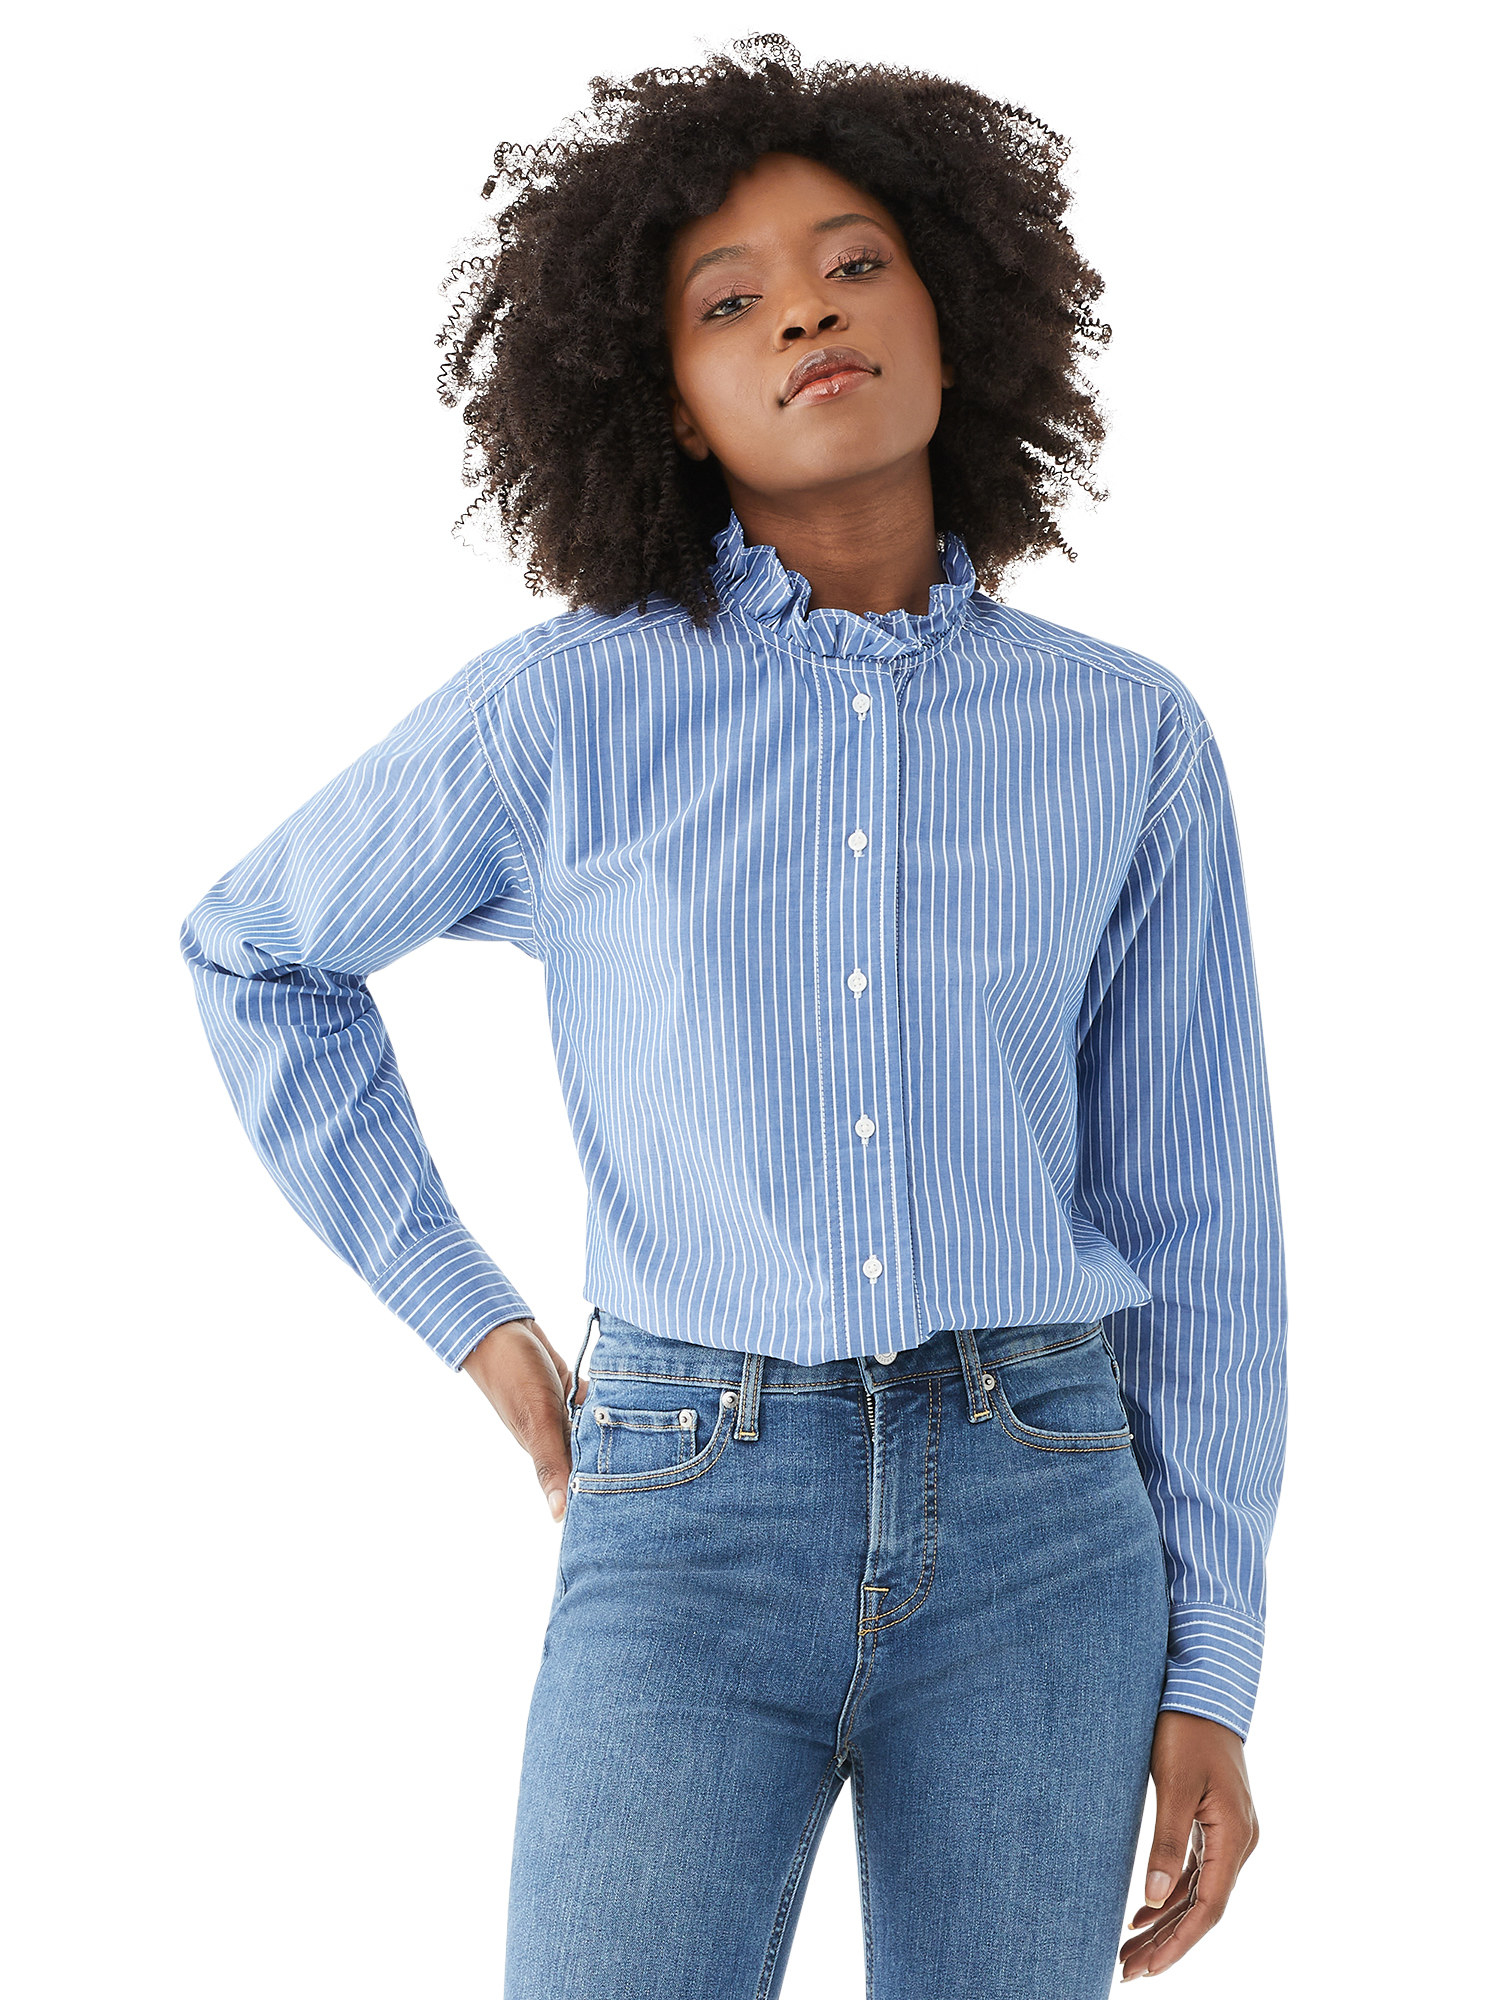 Model wearing jeans and striped blue shirt